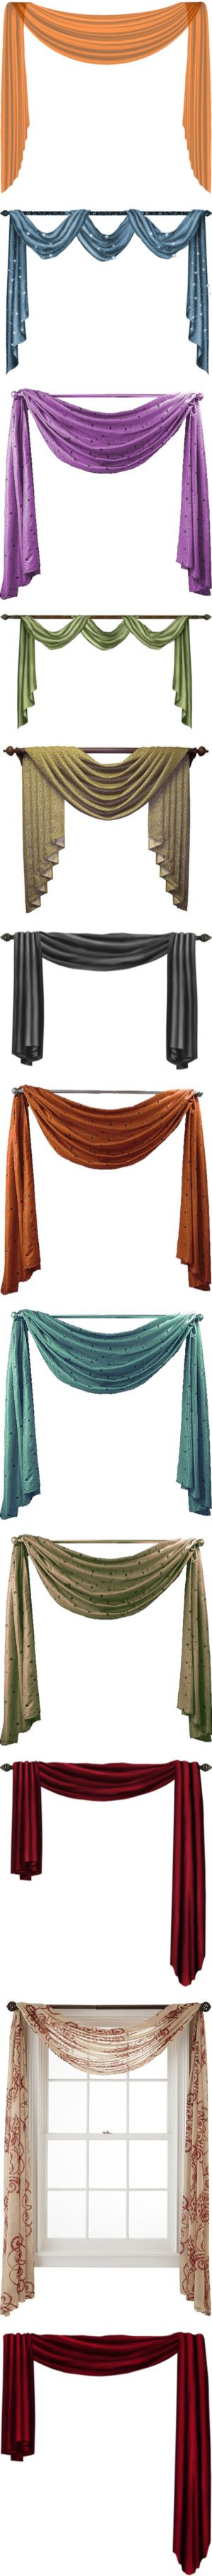 Scarf Valances by justkath on Polyvore featuring home, home decor, window treatments, curtains, drapes, furniture, scarf window treatments, scarf curtains, art and backgrounds